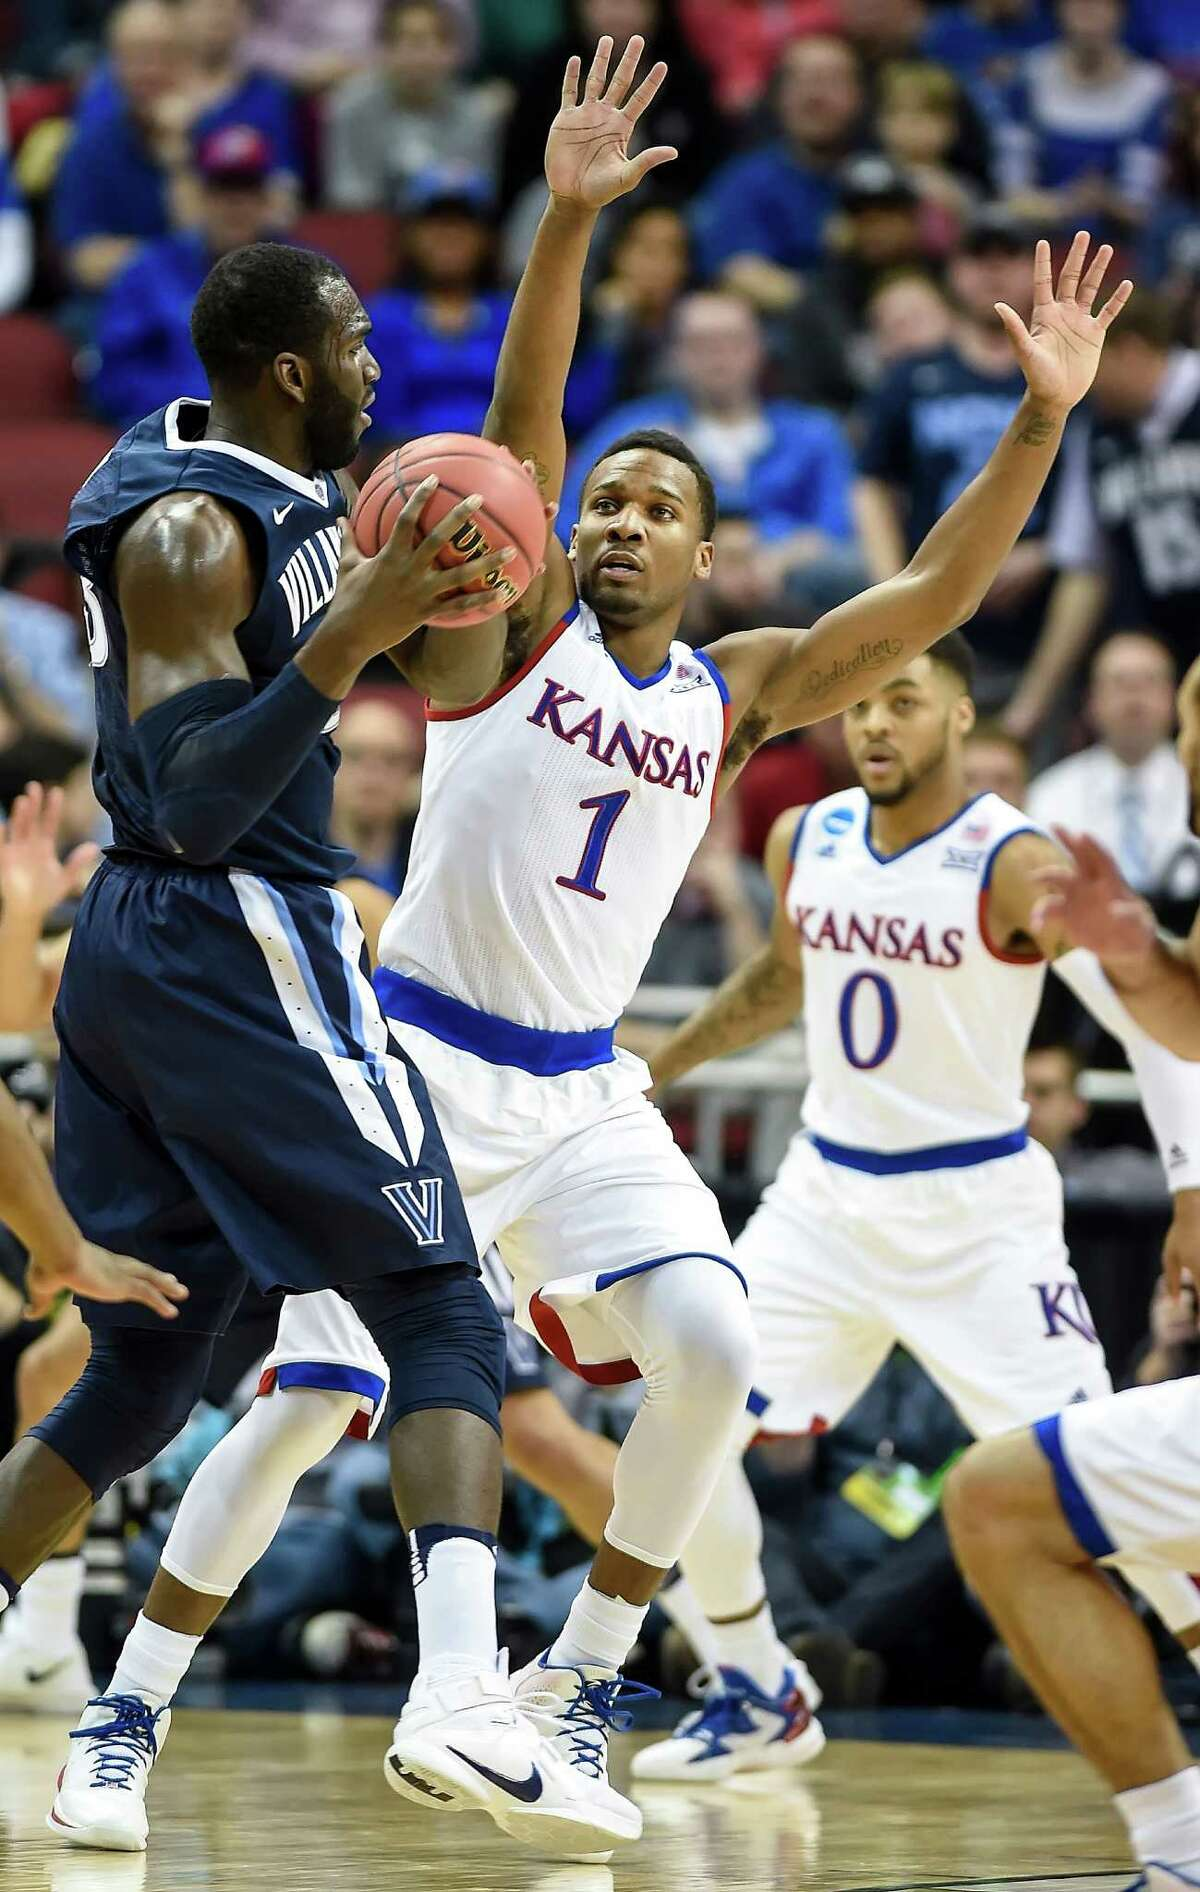 Kansas guard Wayne Selden Jr. (1) pressures Villanova forward Daniel Ochefu, left, in the first half during the finals of the NCAA Tournament's South region at the KFC Yum! Center in Louisville, Ky., on Saturday, March 26, 2016.